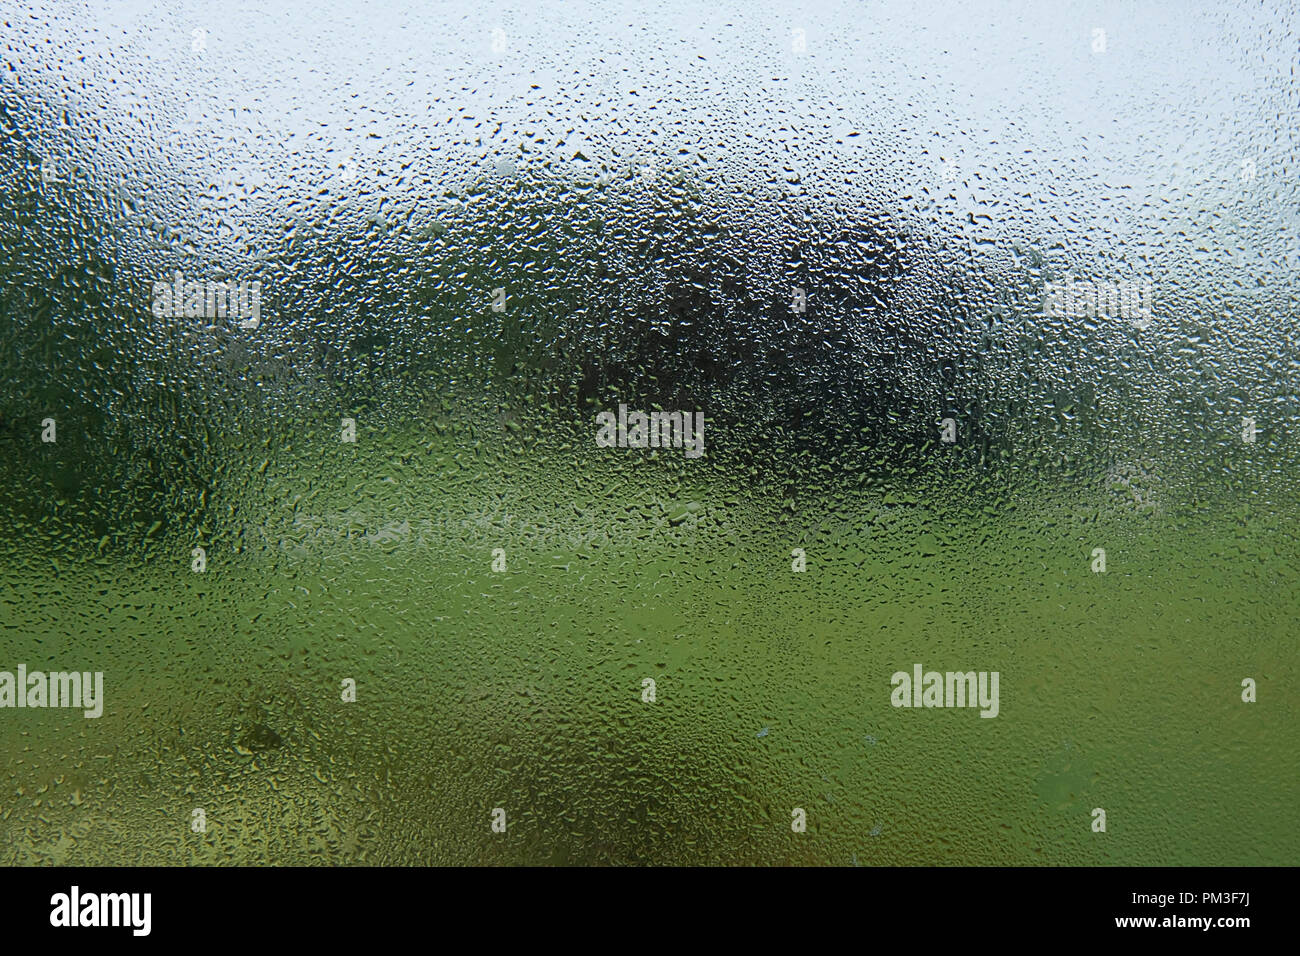 View through rainy window pane on dreary day - Stock Image